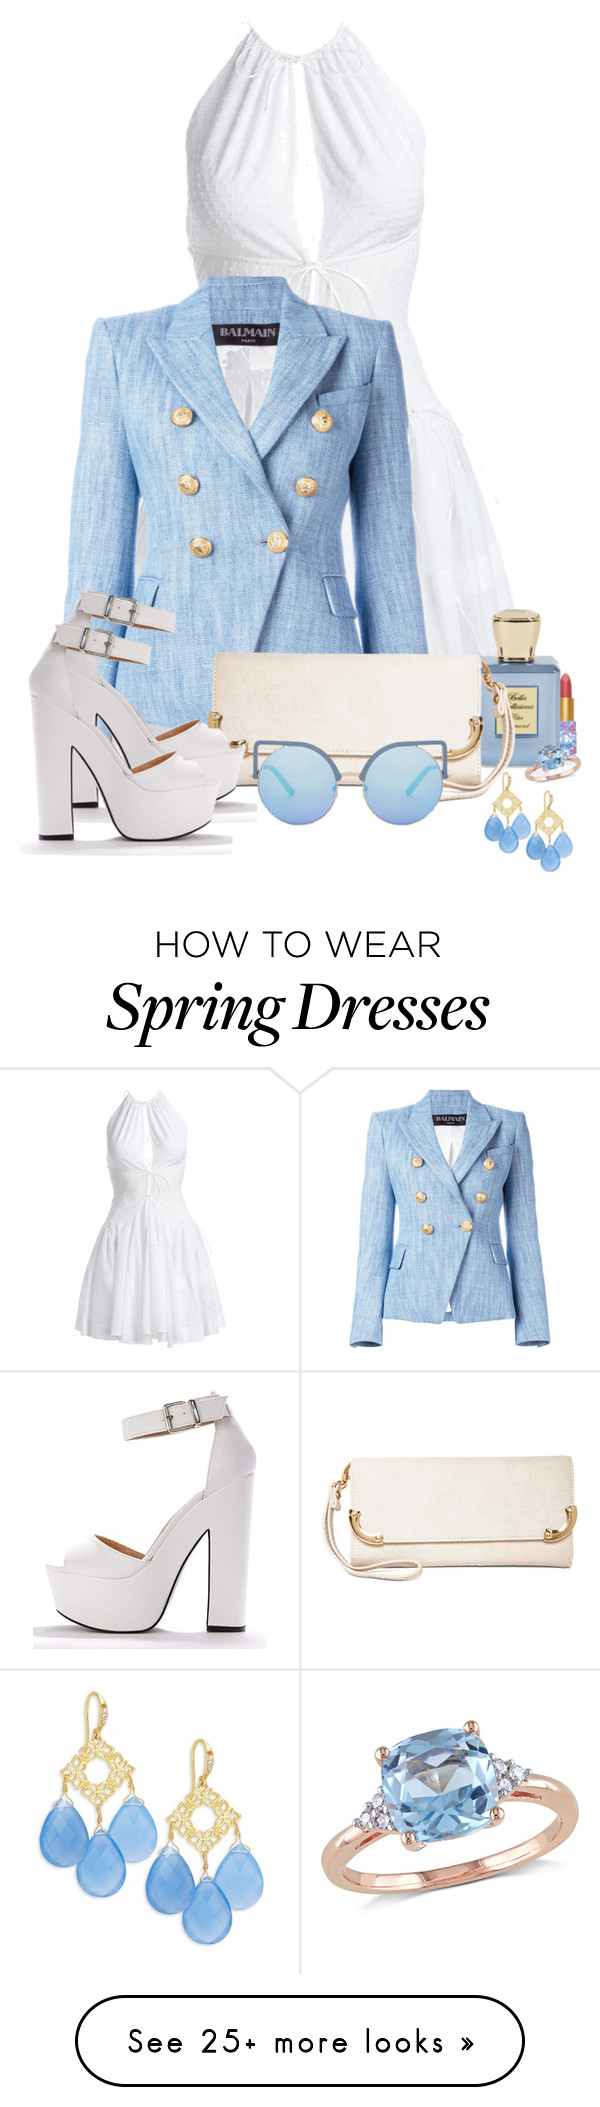 """Wear It in a Denim Jacket 2"" by sarahguo on Polyvore featuring Alaïa, Balmain, MKF Collection, Matthew Williamson and Indulgems"